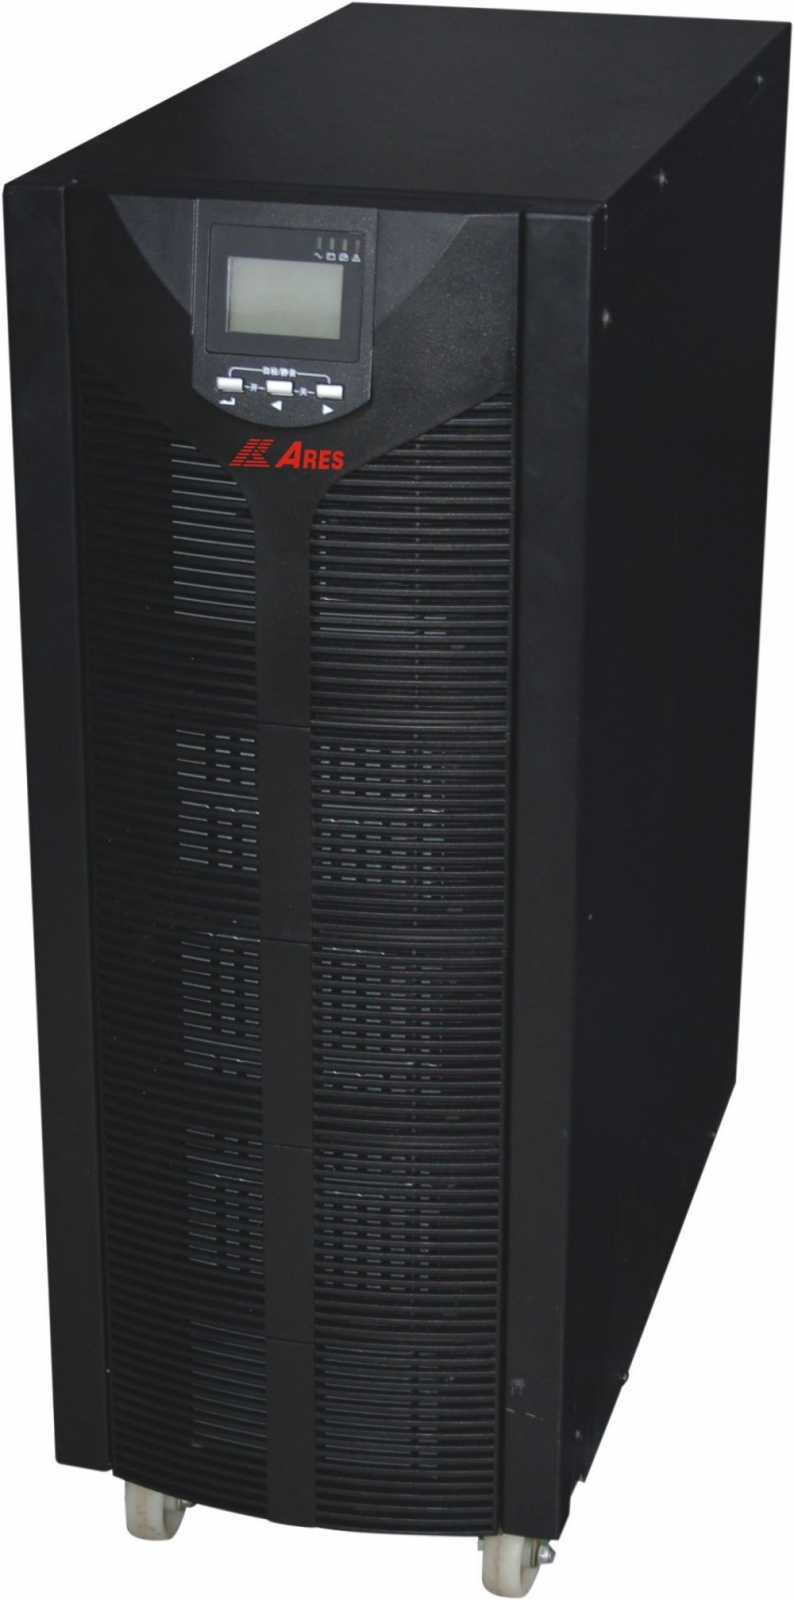 UPS 6KVA Ares AR906II (5400w) Online Tower